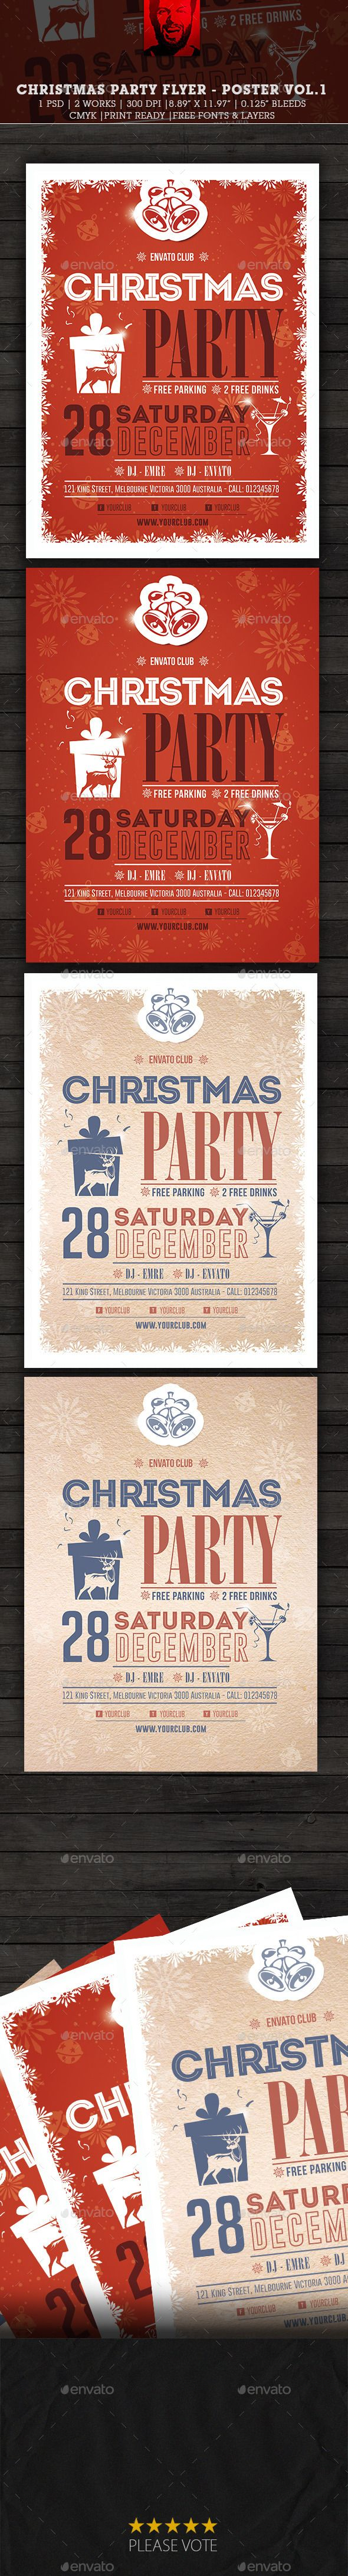 Christmas Party Flyer  Poster Vol  Party Flyer Christmas